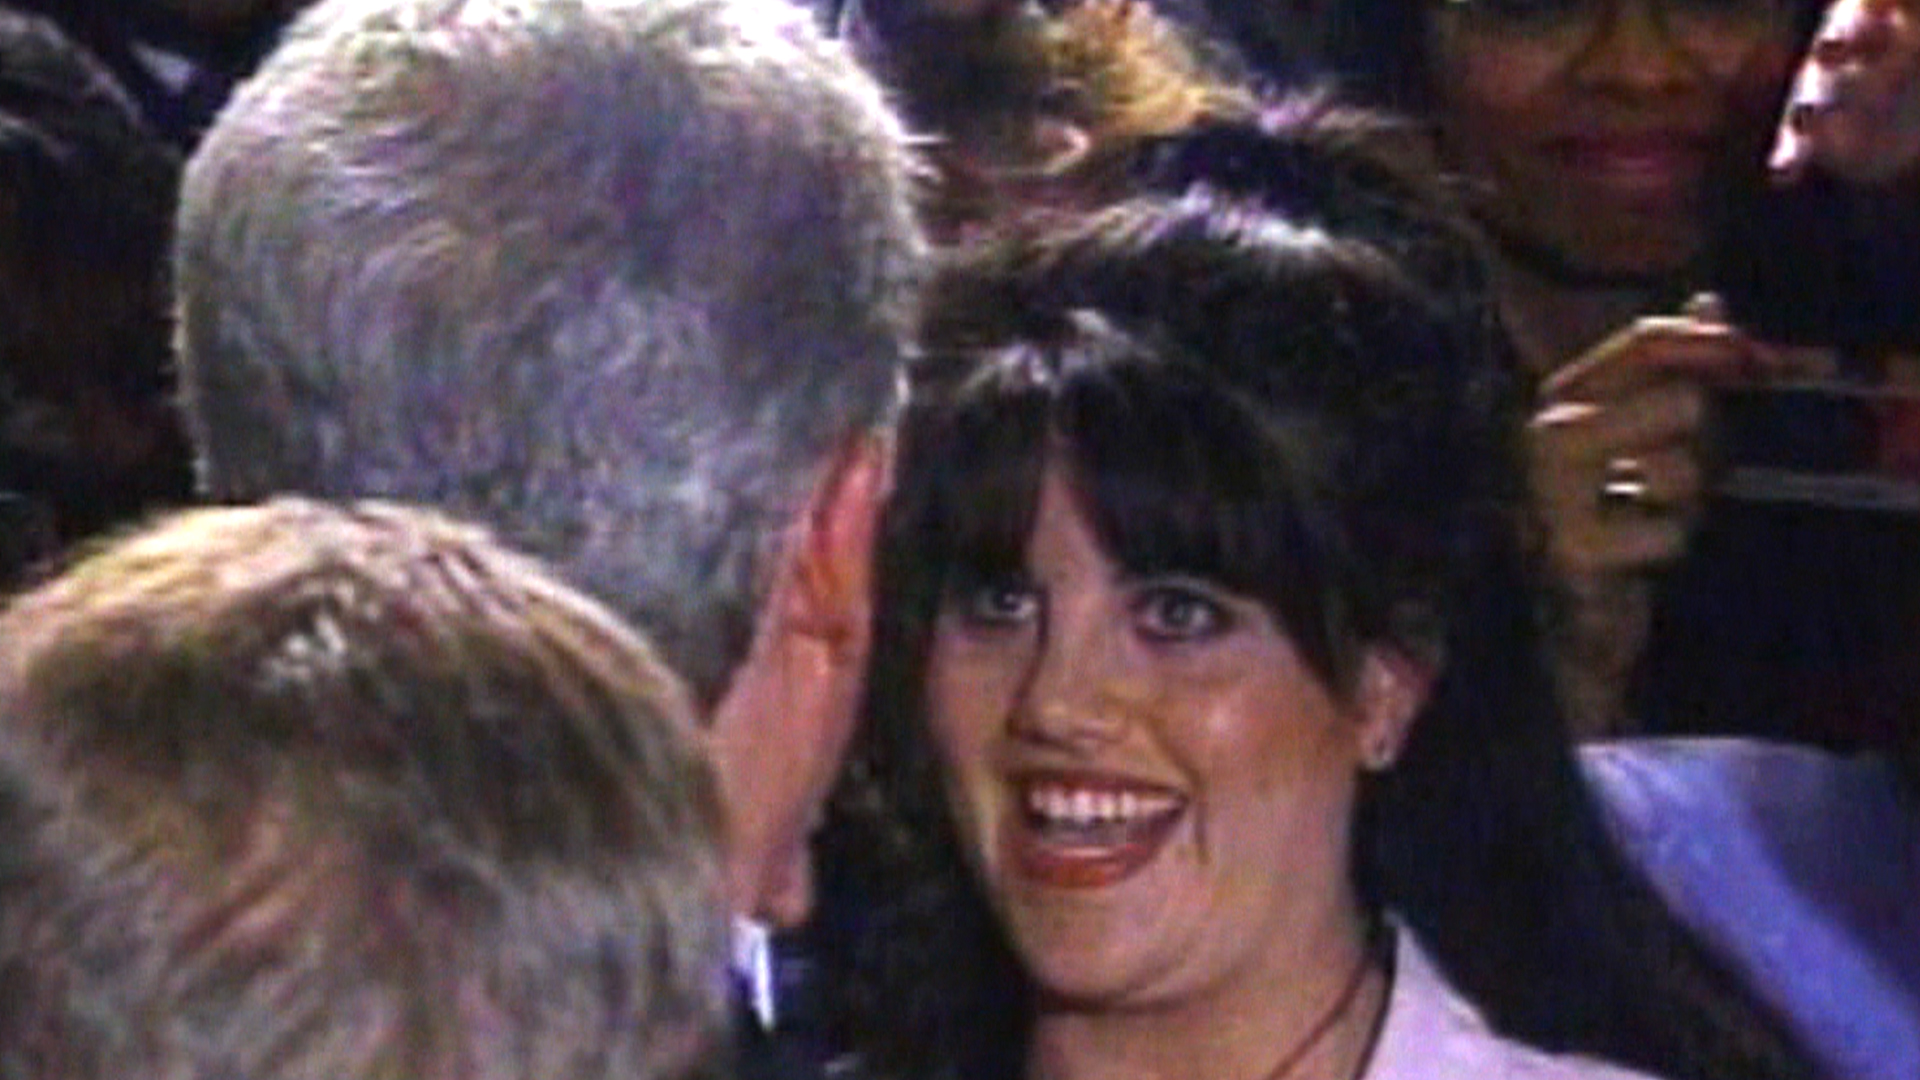 Tamron Hall Monica Lewinsky Has The Right To Tell Her